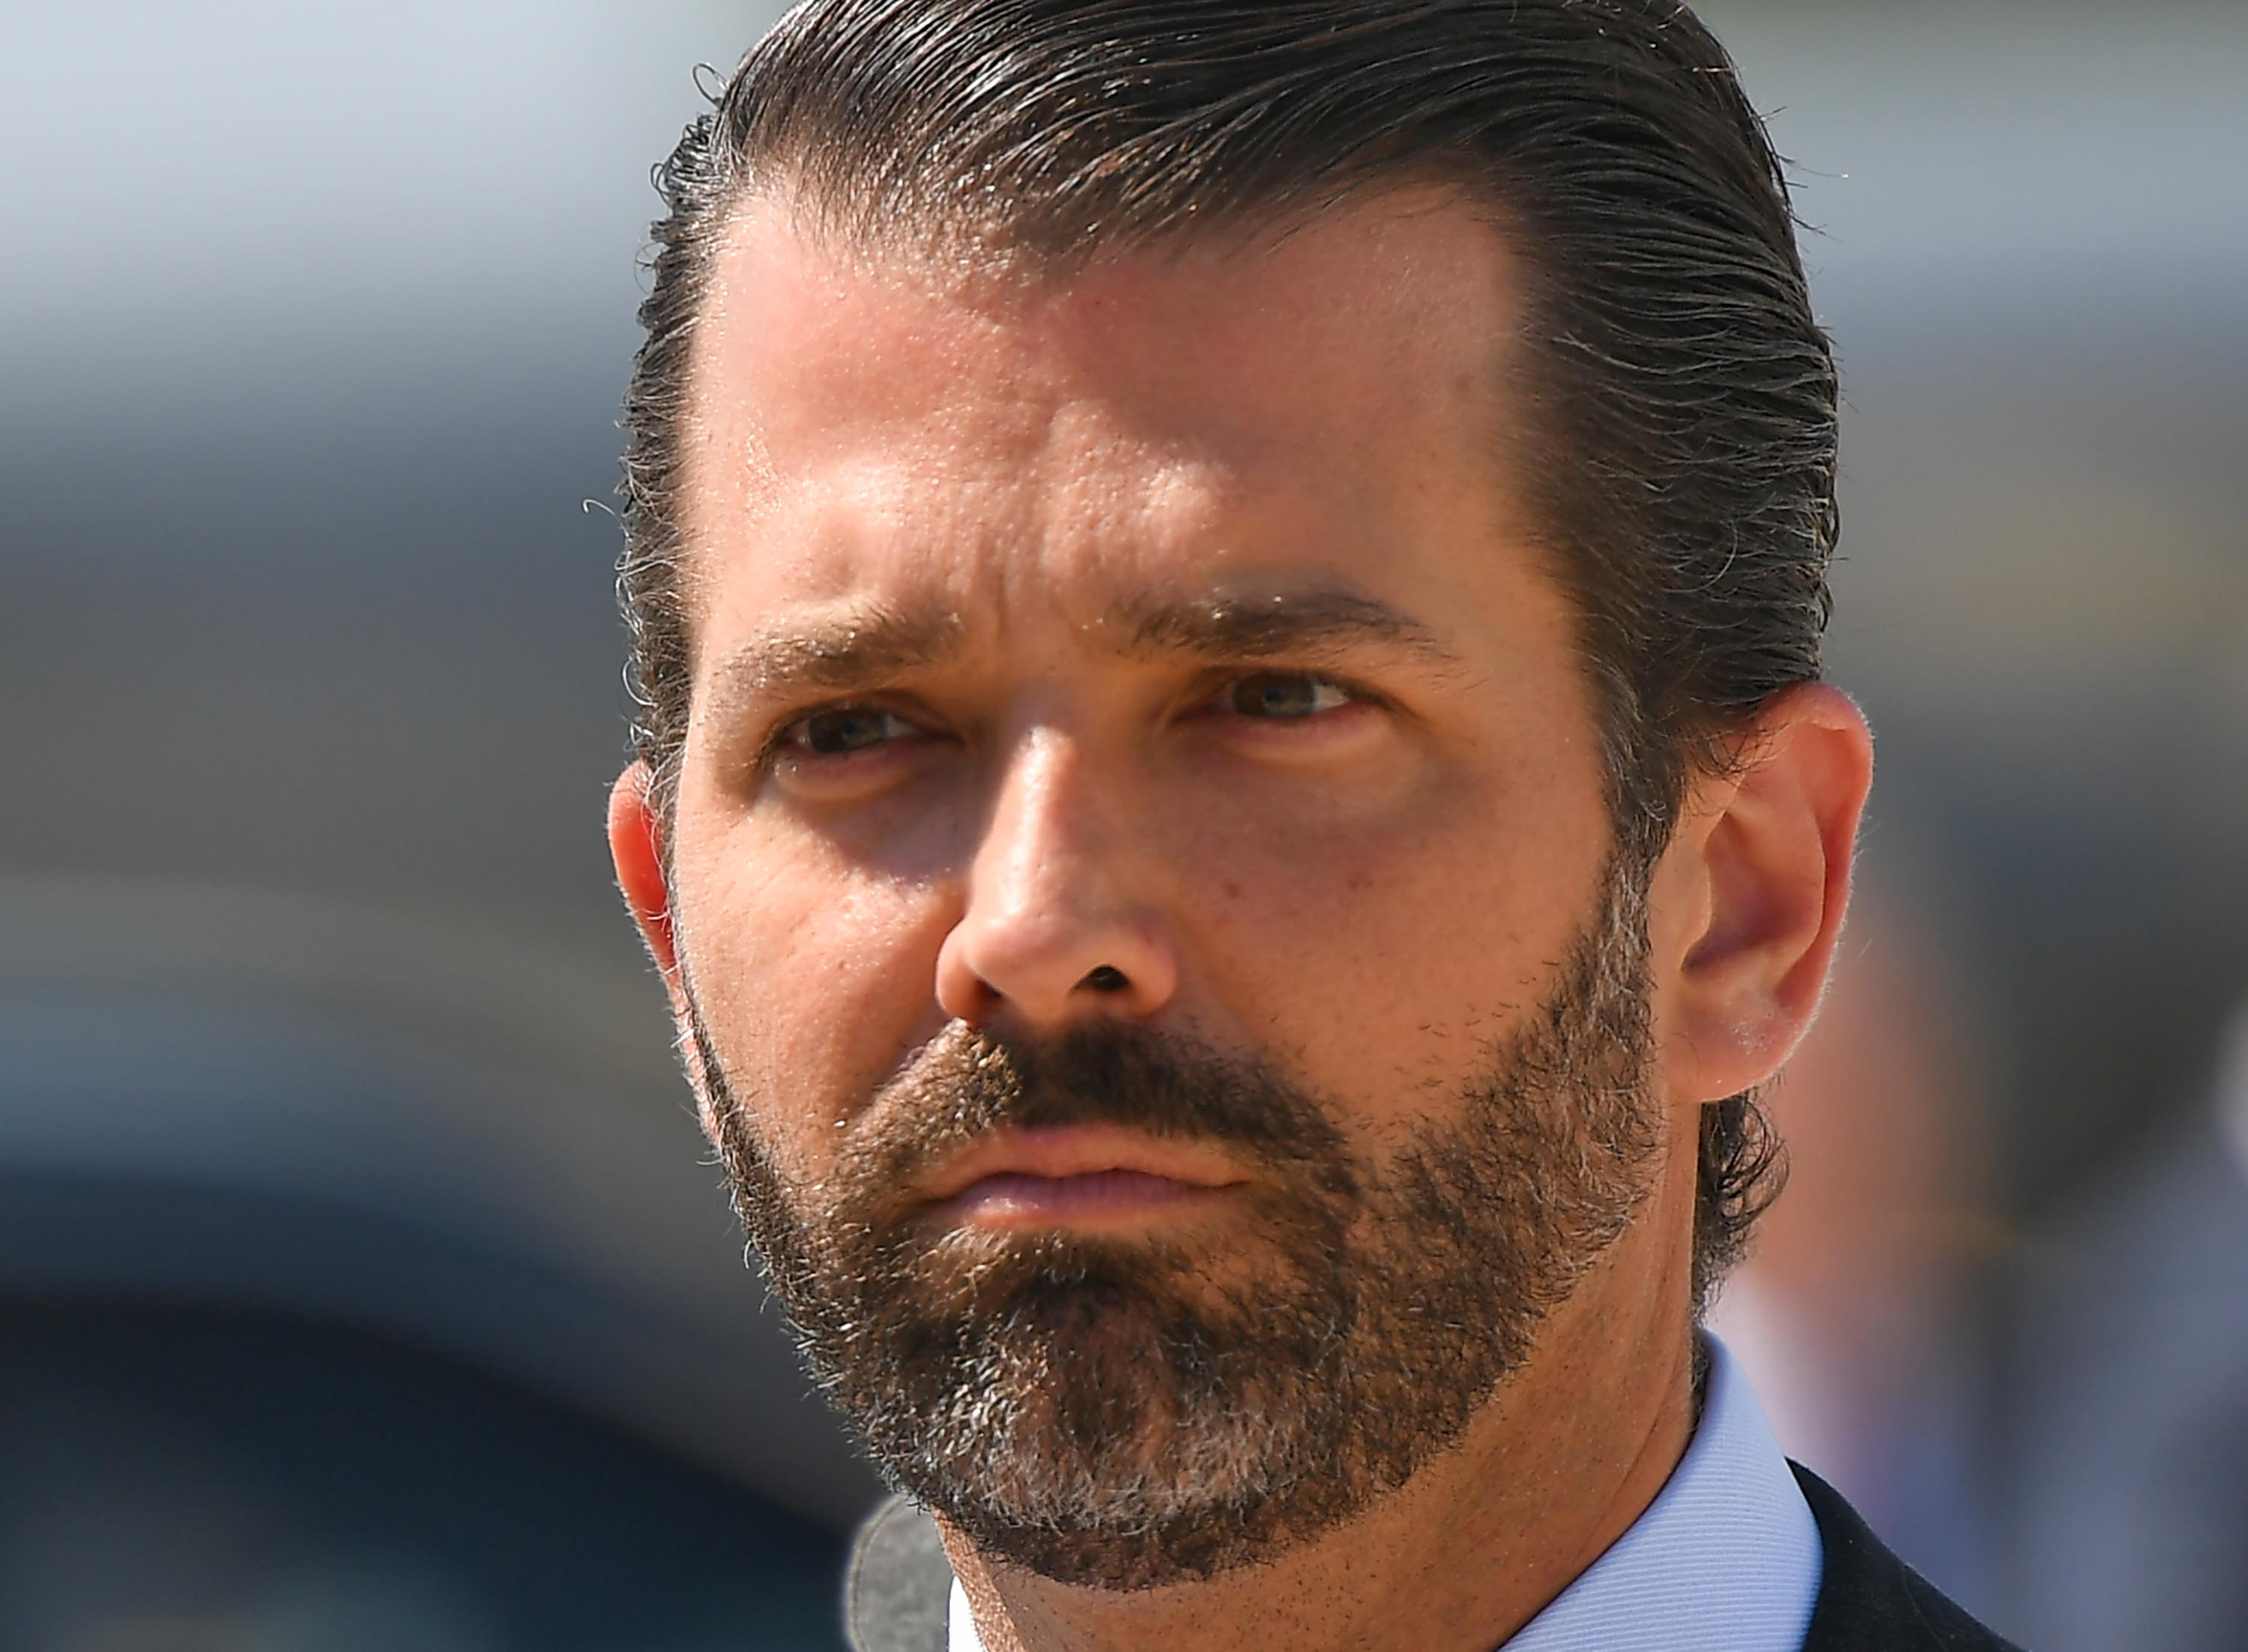 Fact check: Trump Jr. touts baseless rigged-election claims to recruit 'army' for his dad